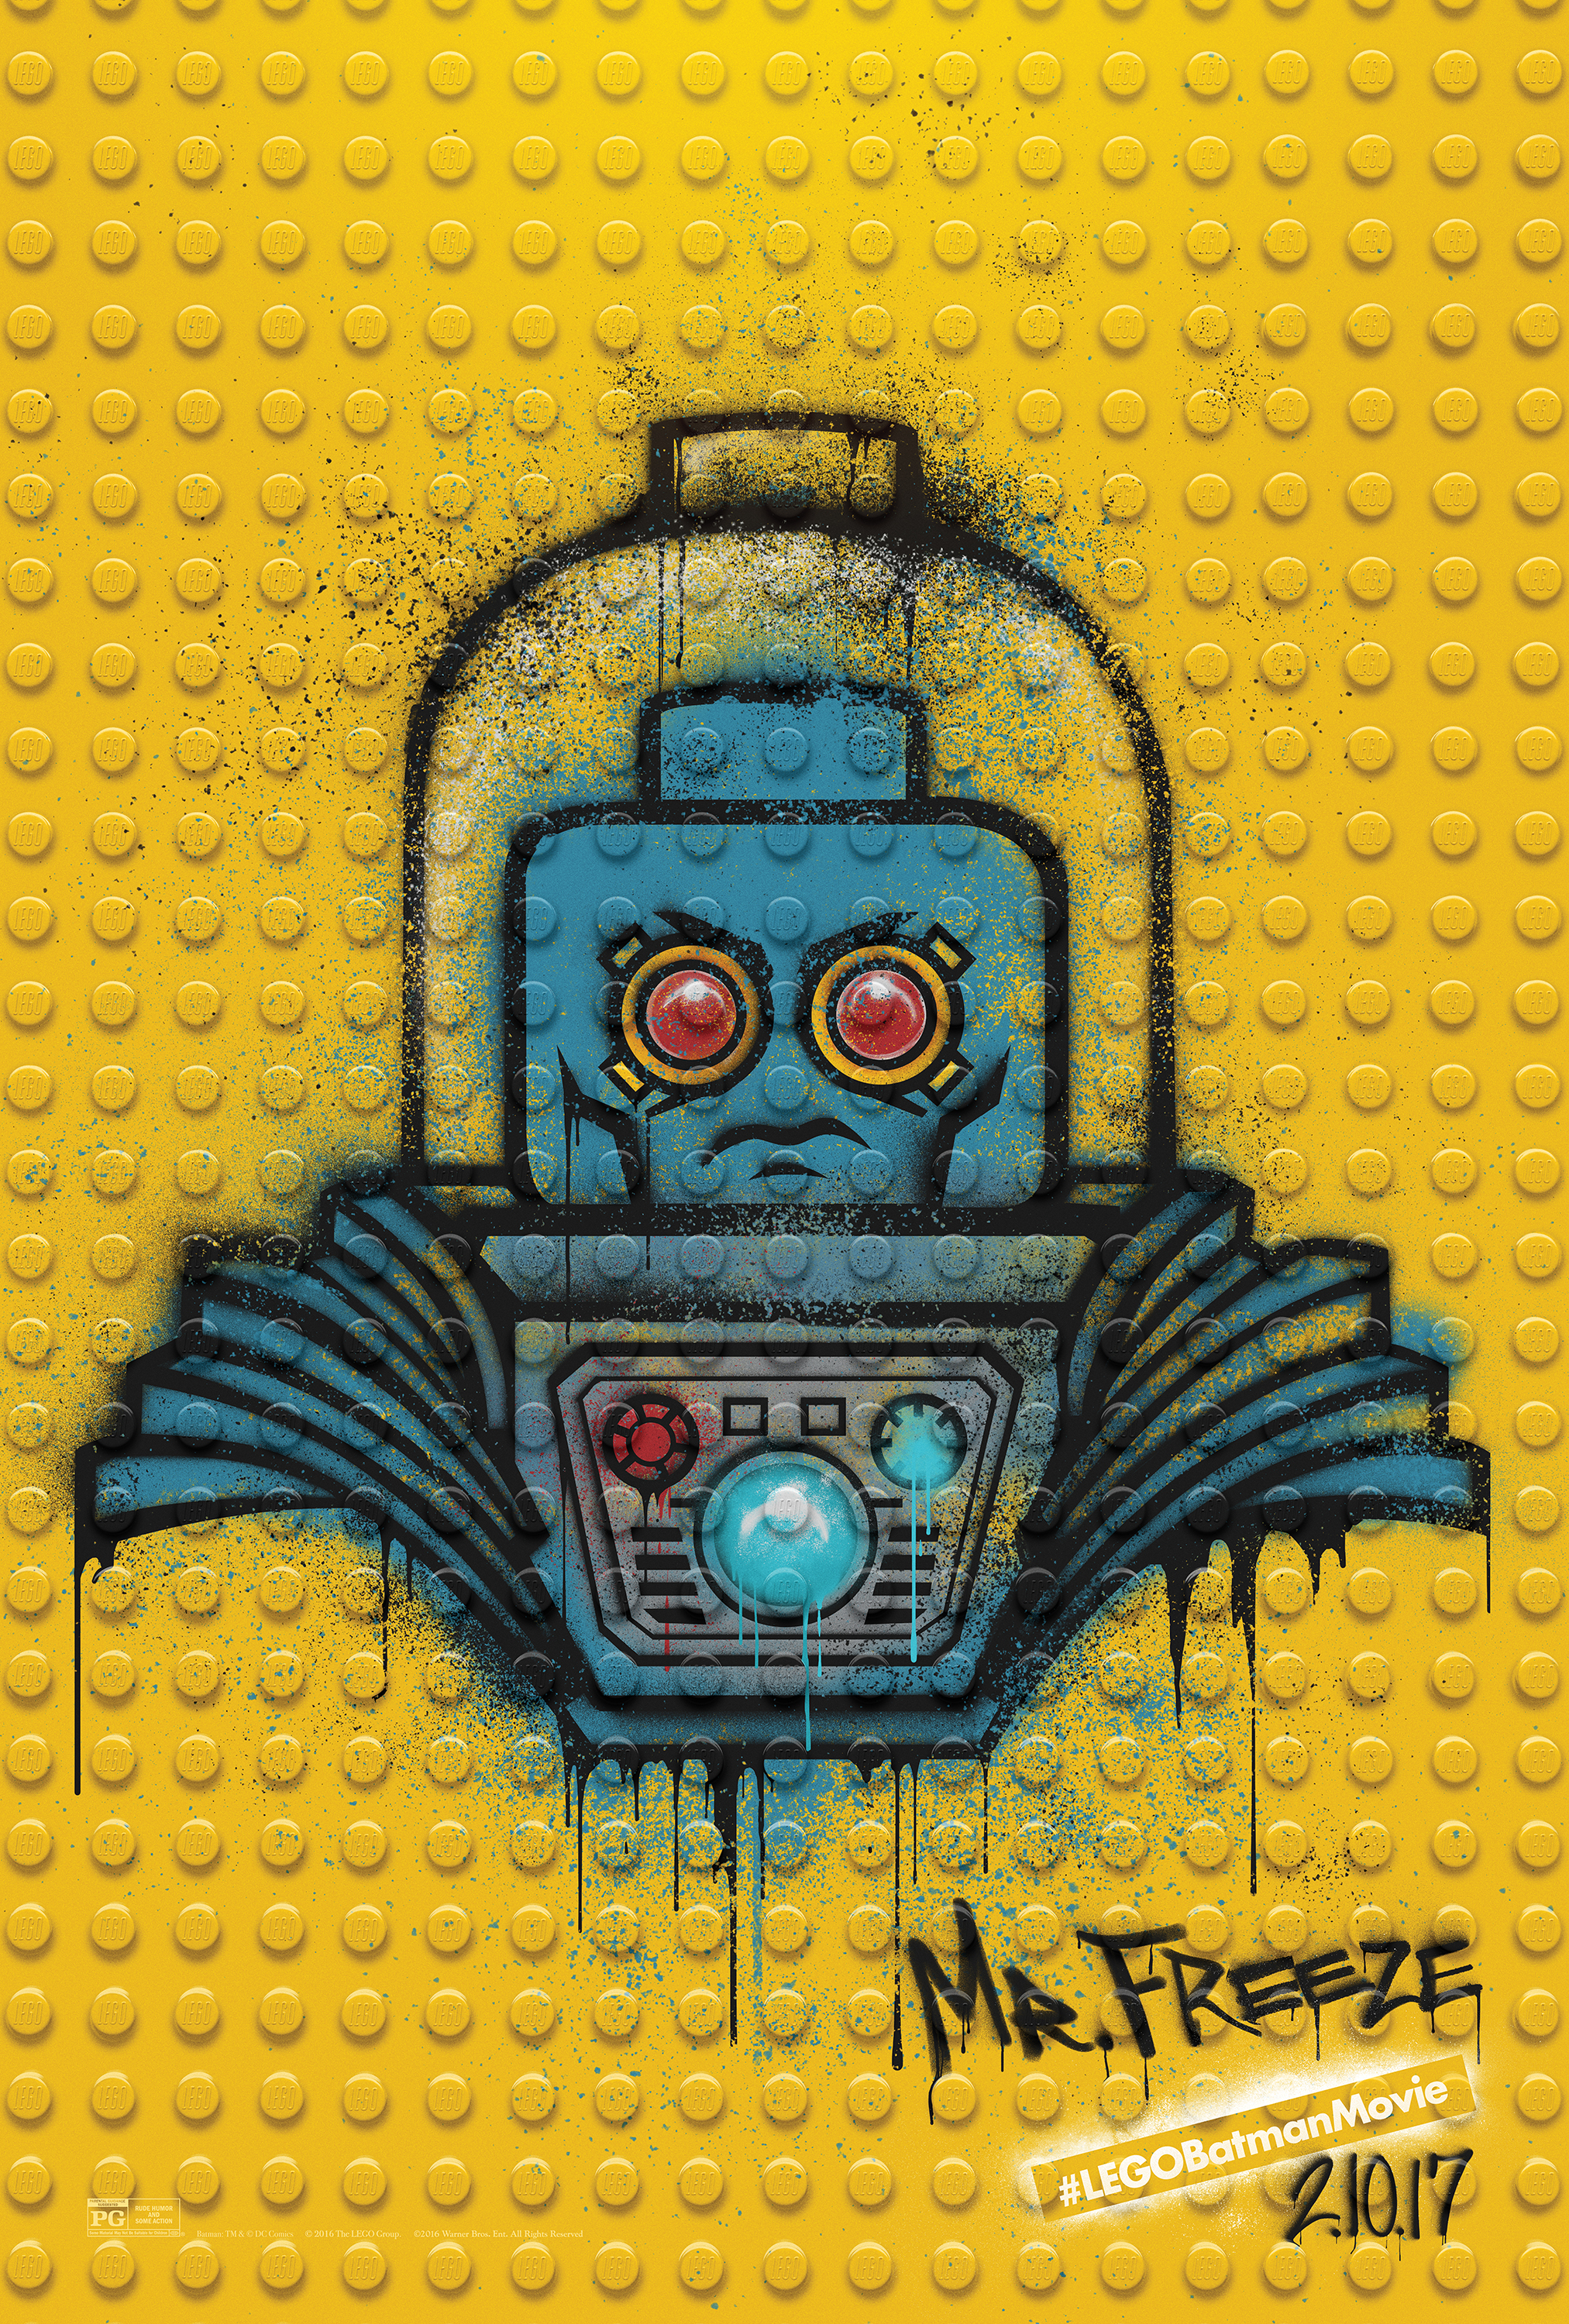 Image for The LEGO Batman Movie - Graffiti Wild Postings | Mr Freeze